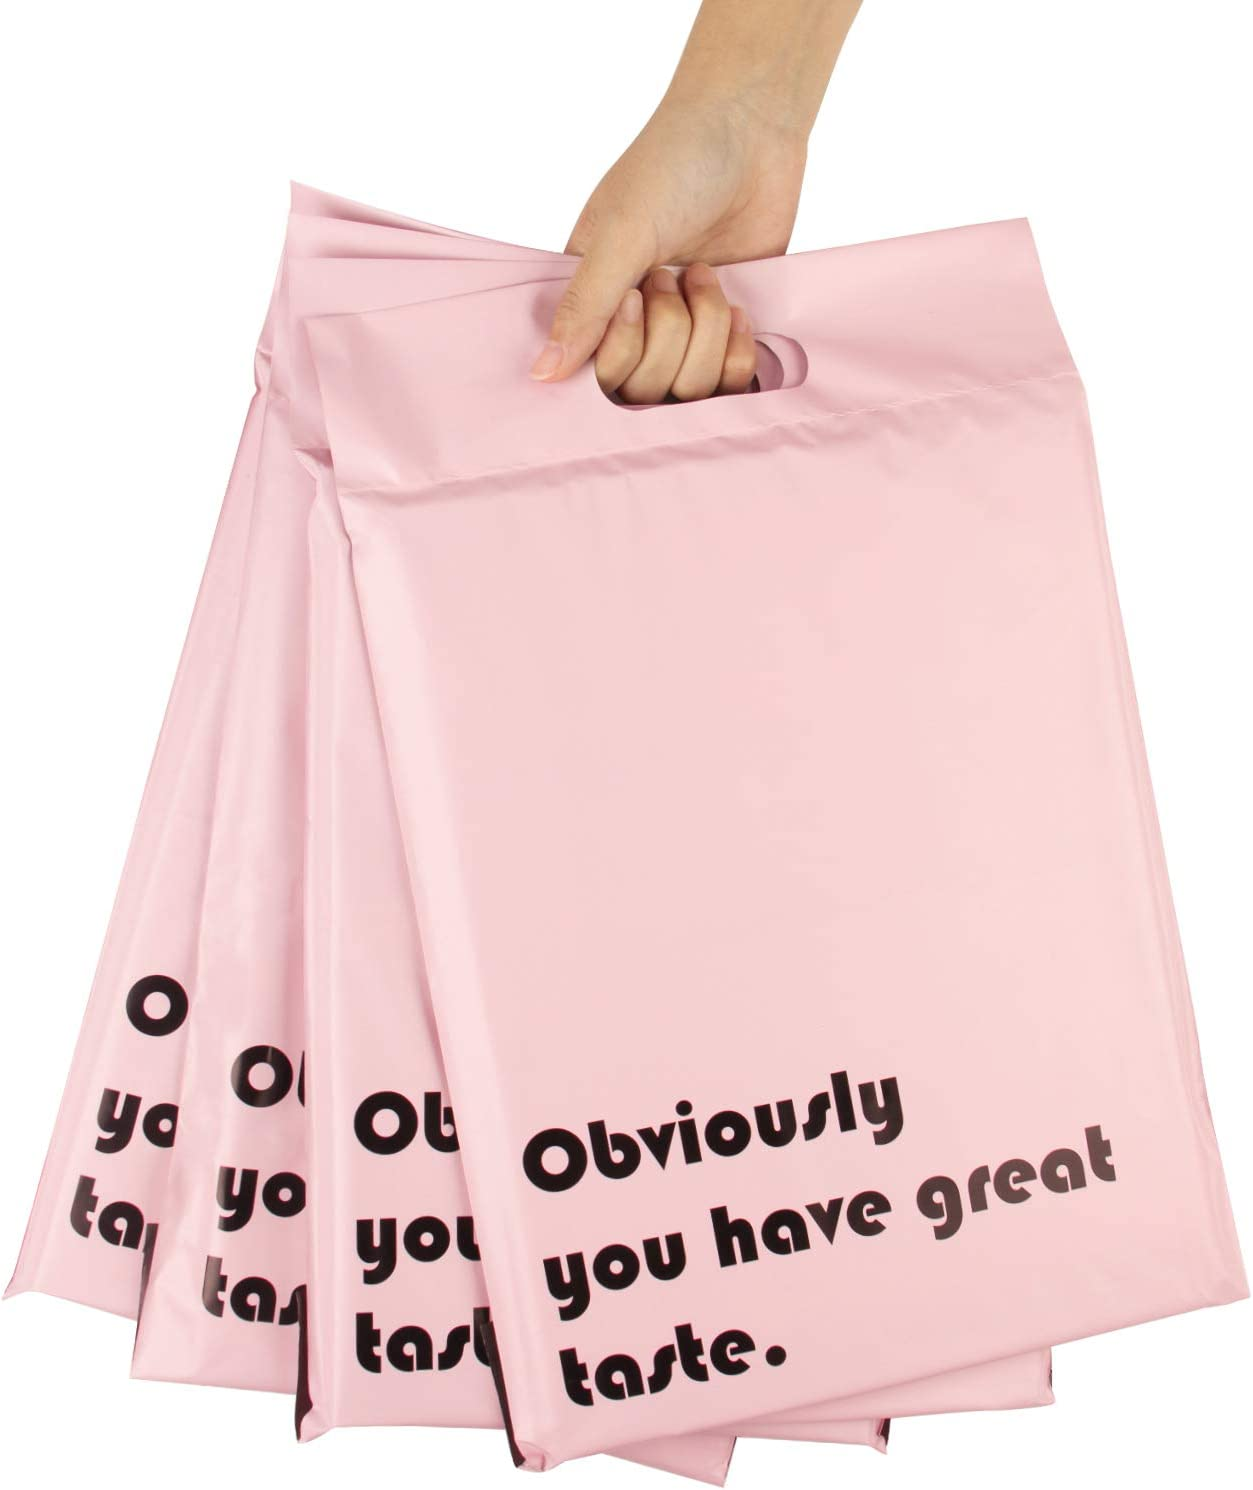 500 10x13 Poly Mailers Plastic Envelopes Shipping Mailing Bags 2.5 MIL Hot Pink